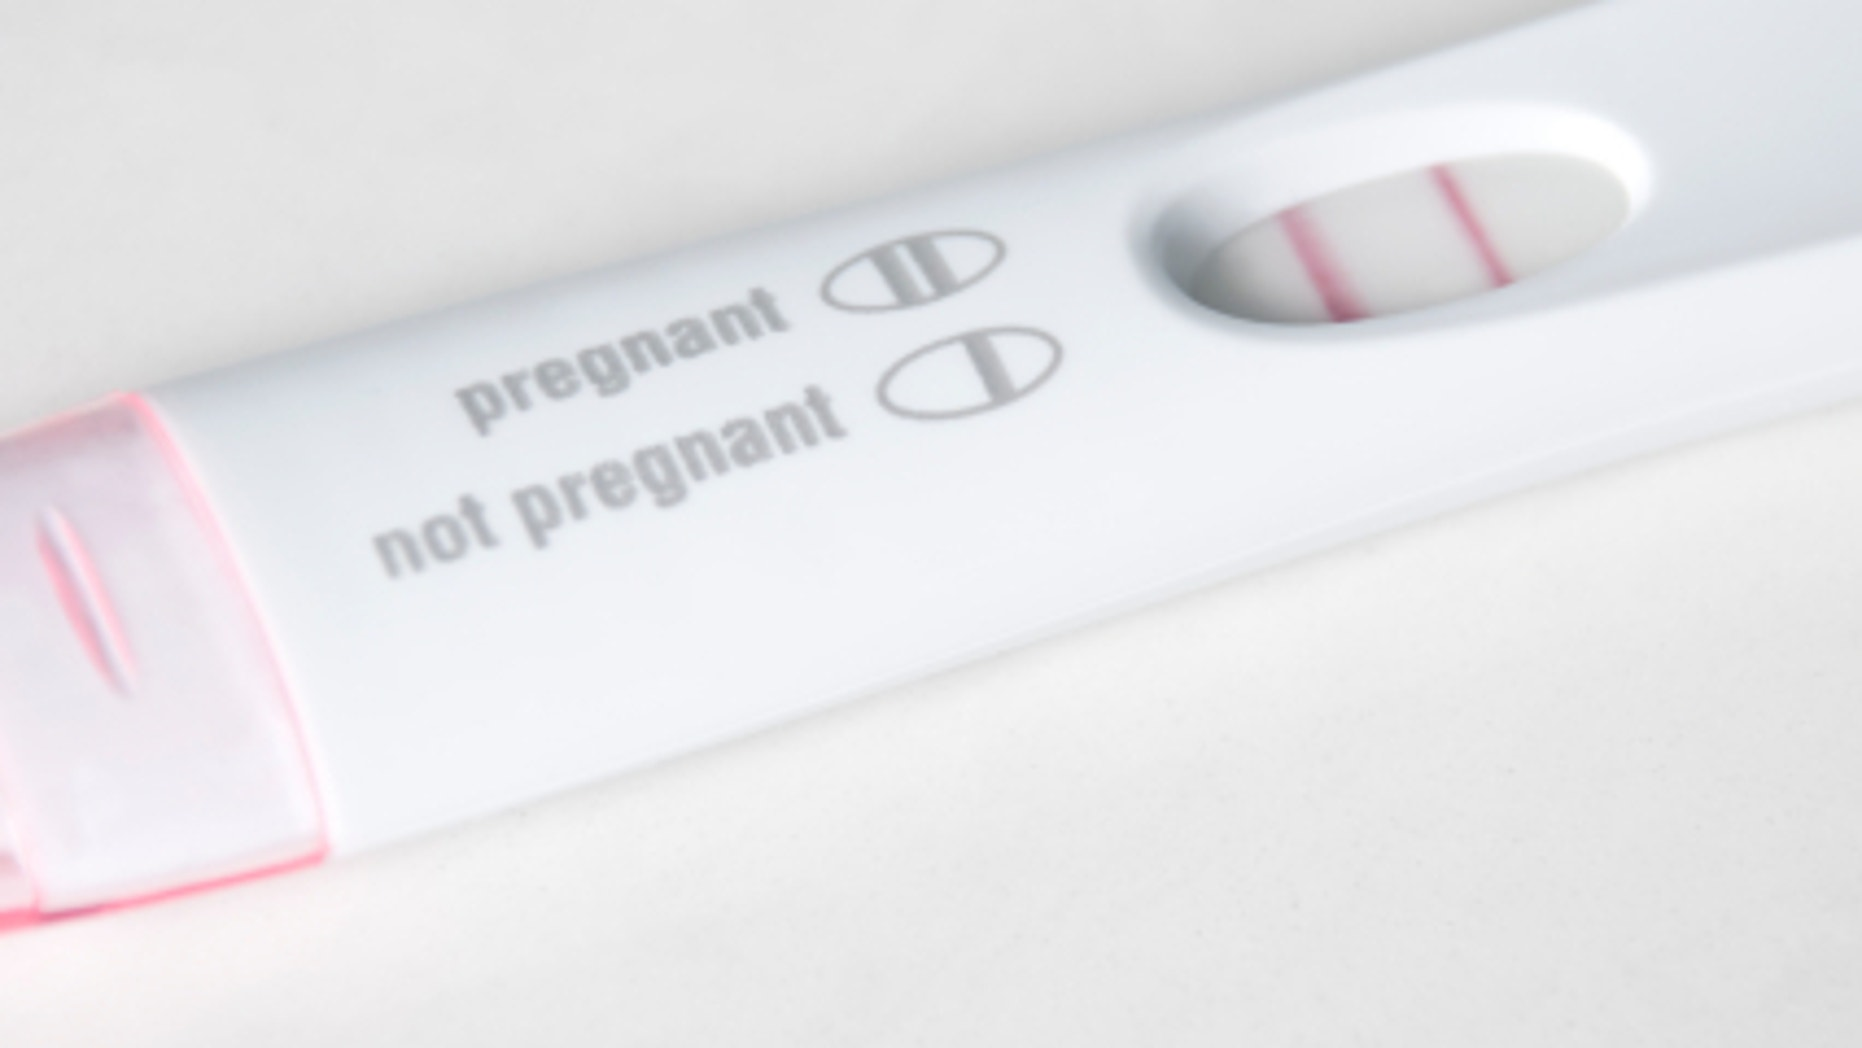 Tell me, if I have low progesterone, this affects the pregnancy test